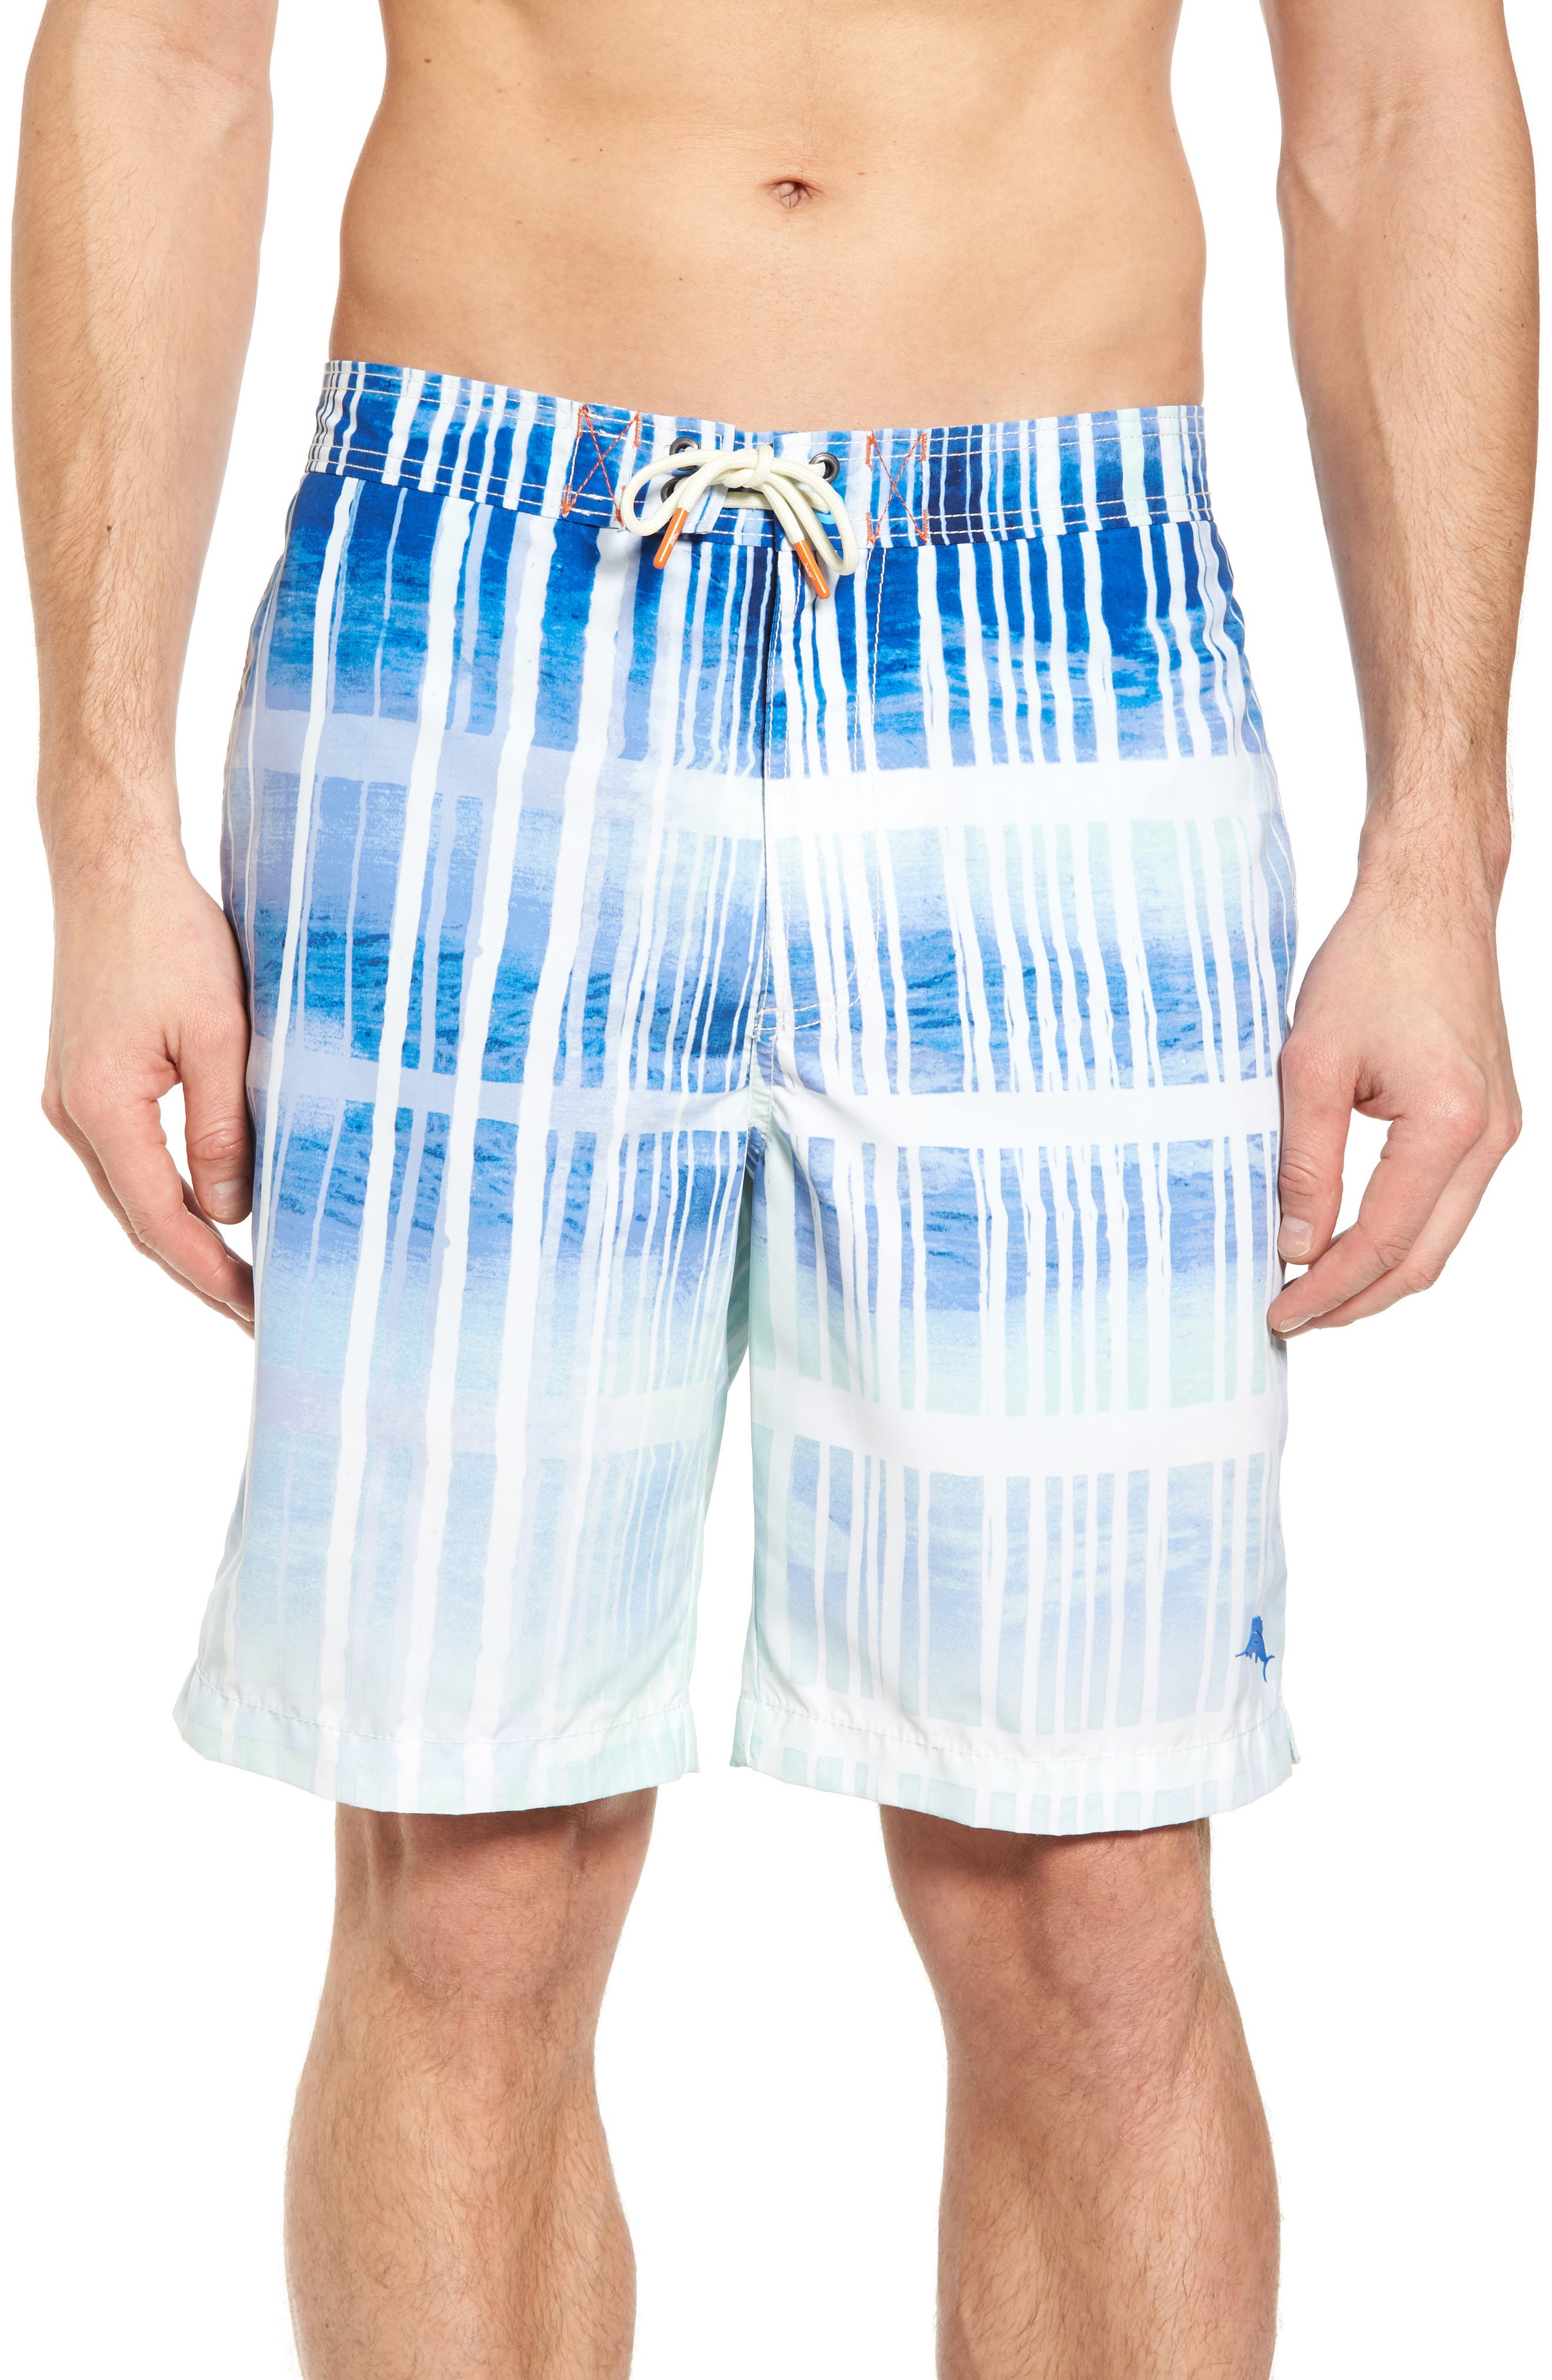 Baja Okeechobee Board Shorts,                         Main,                         color, 400